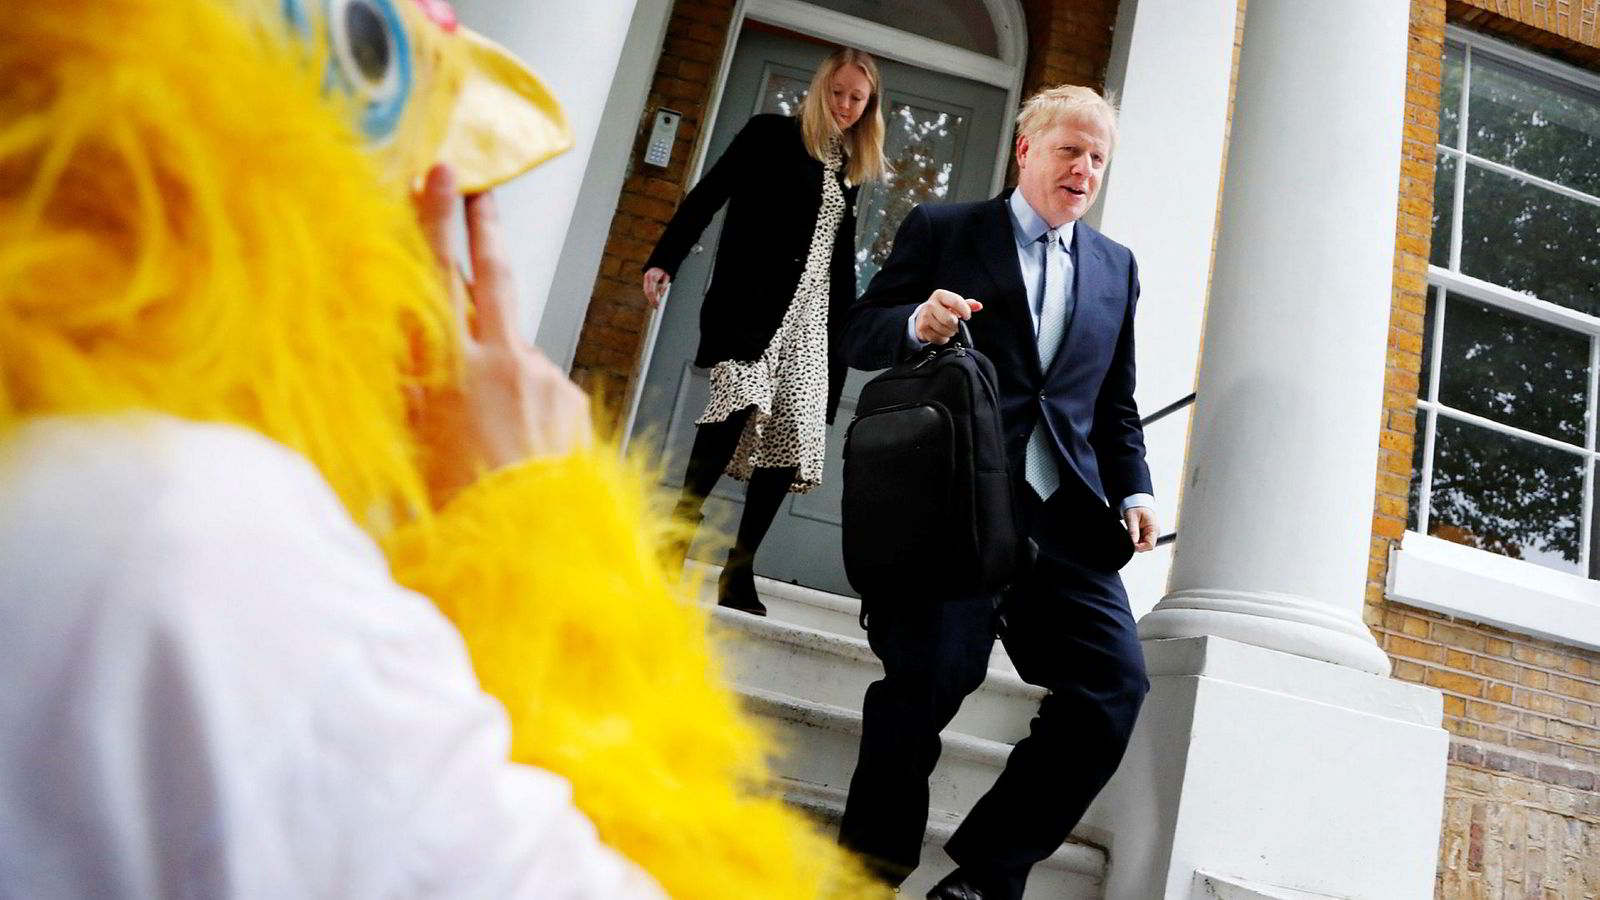 A person dressed as a chicken stands outside as British Conservative Party lawmaker Boris Johnson leaves his home in London, Thursday, June 13, 2019. Boris Johnson, who ran London as mayor for eight years until 2016 and then became Britain's foreign secretary until his resignation last summer, is a confident if erratic Conservative Party star with a simple message: I'll sort out Brexit. (AP Photo/Frank Augstein) ---